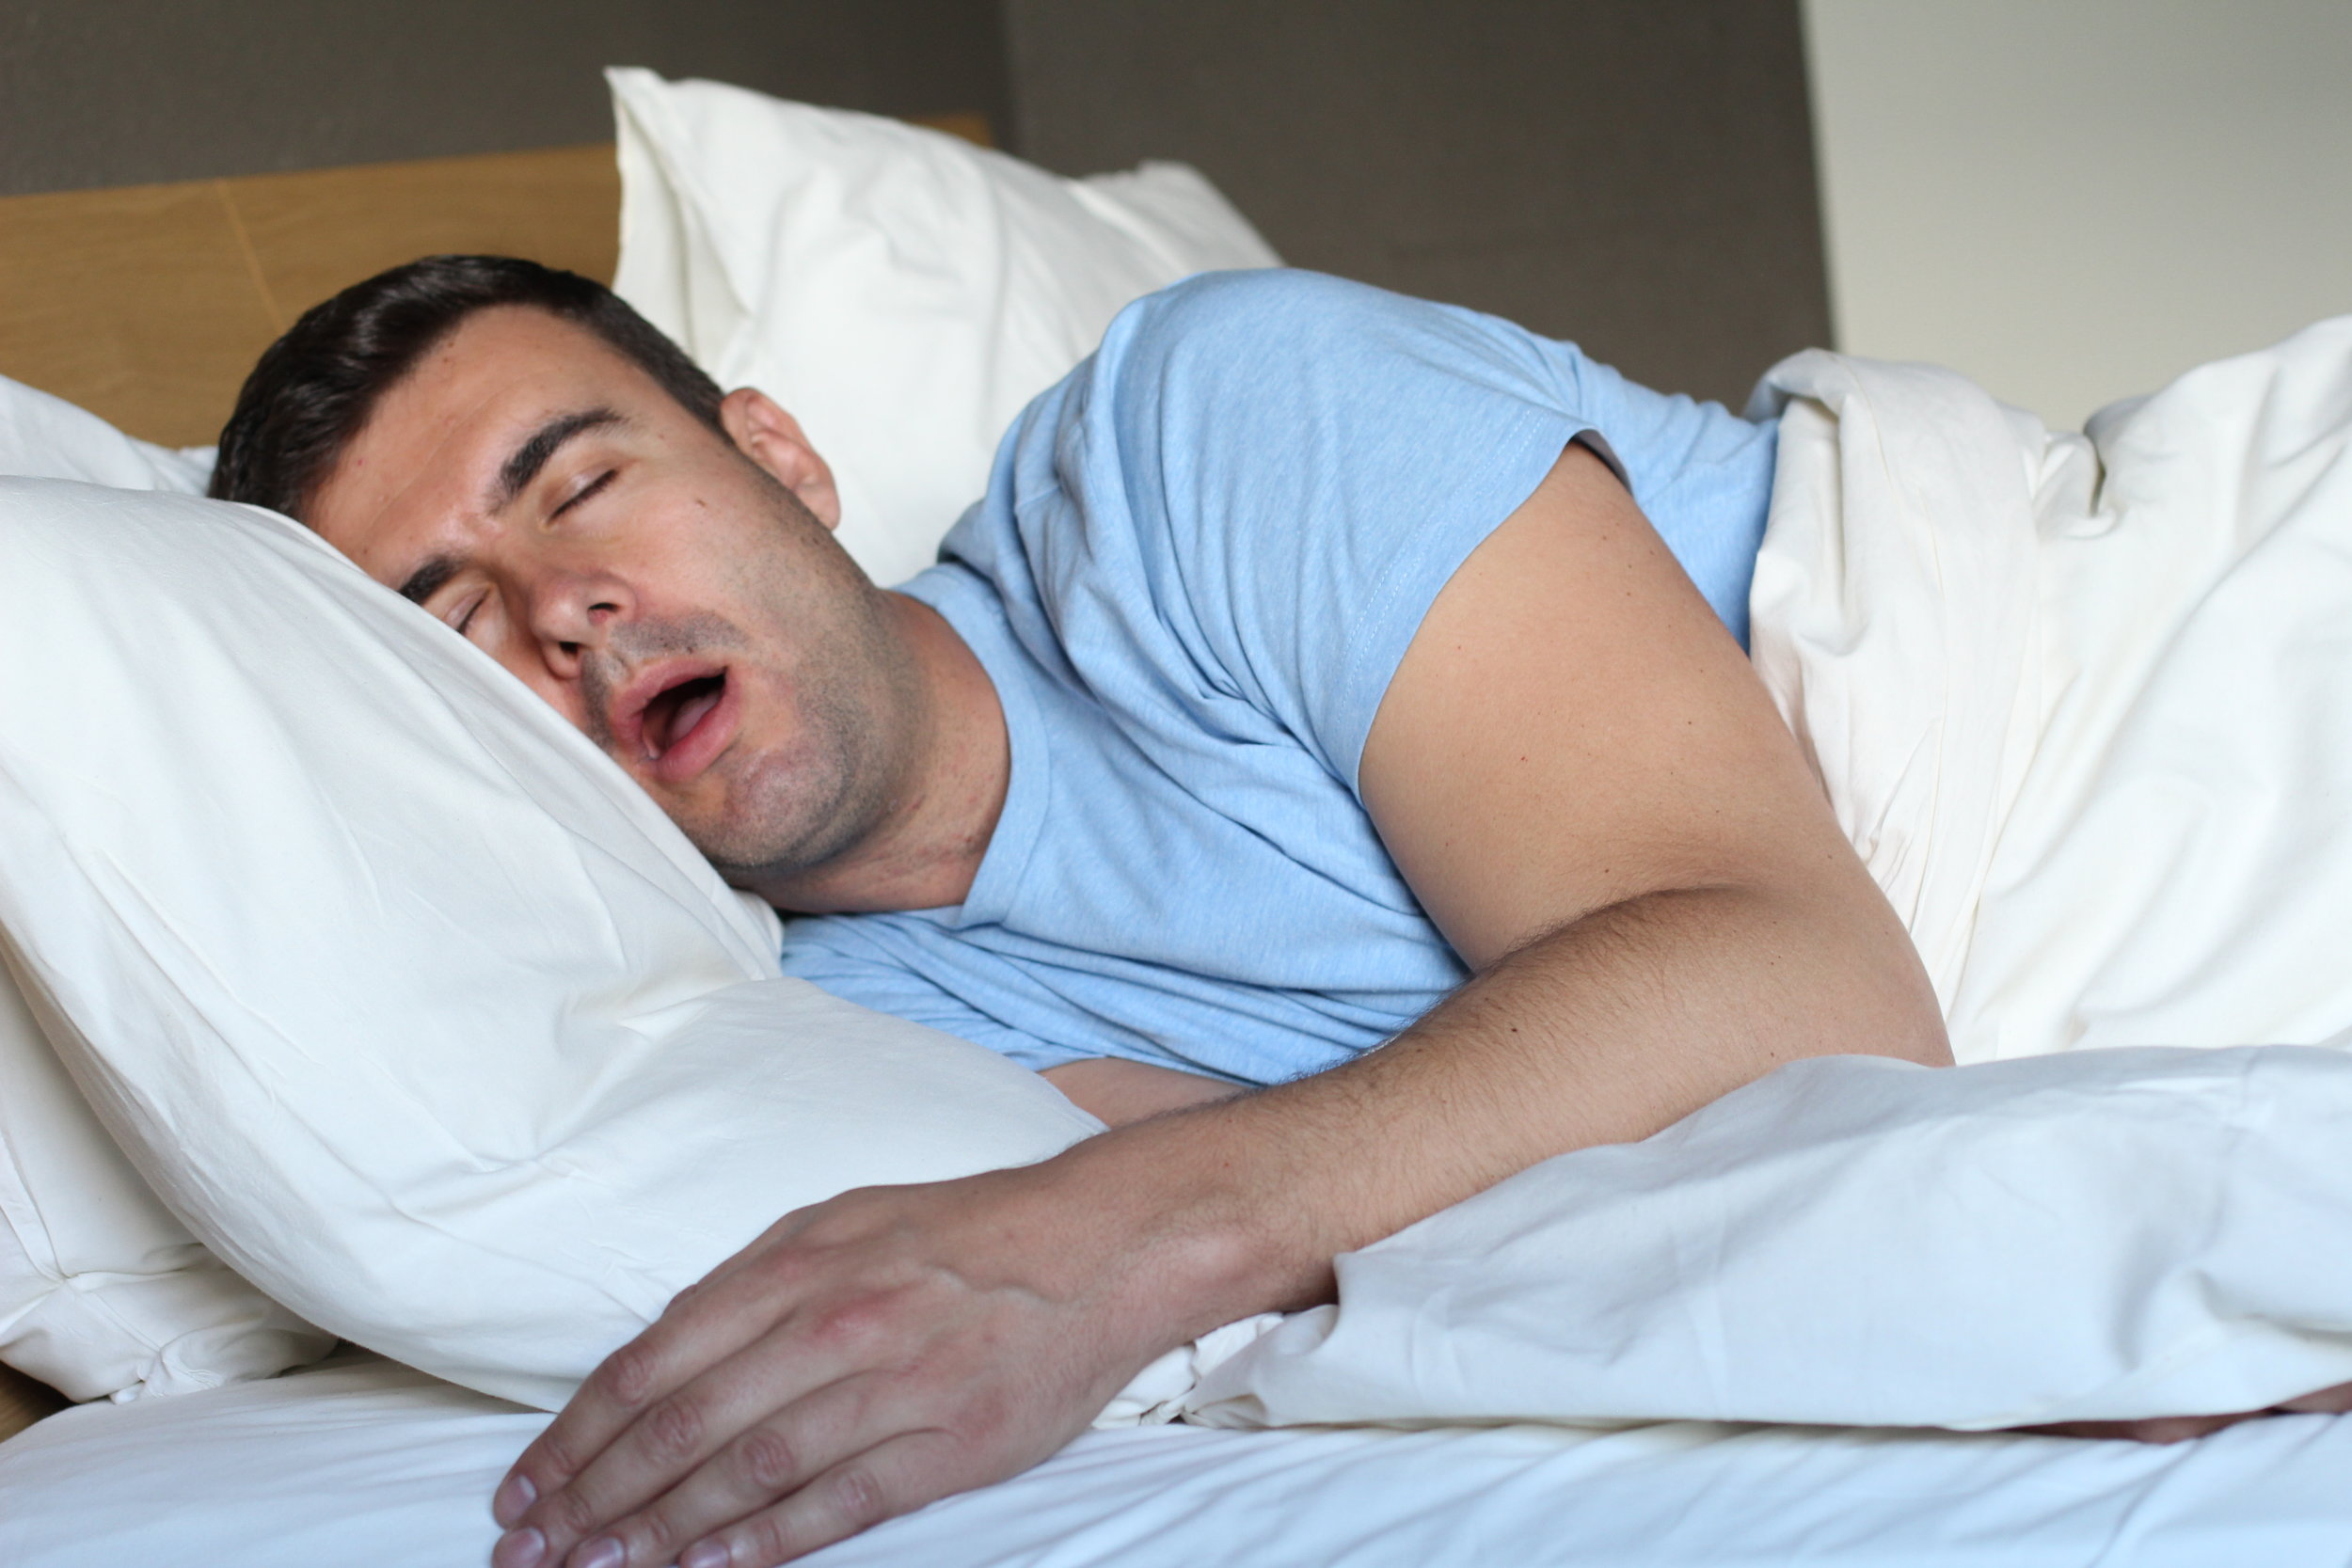 Snoring & Sleep Apnea - Excess tissue in the back of the throat may need to be removed in certain individuals with sleep apnea.